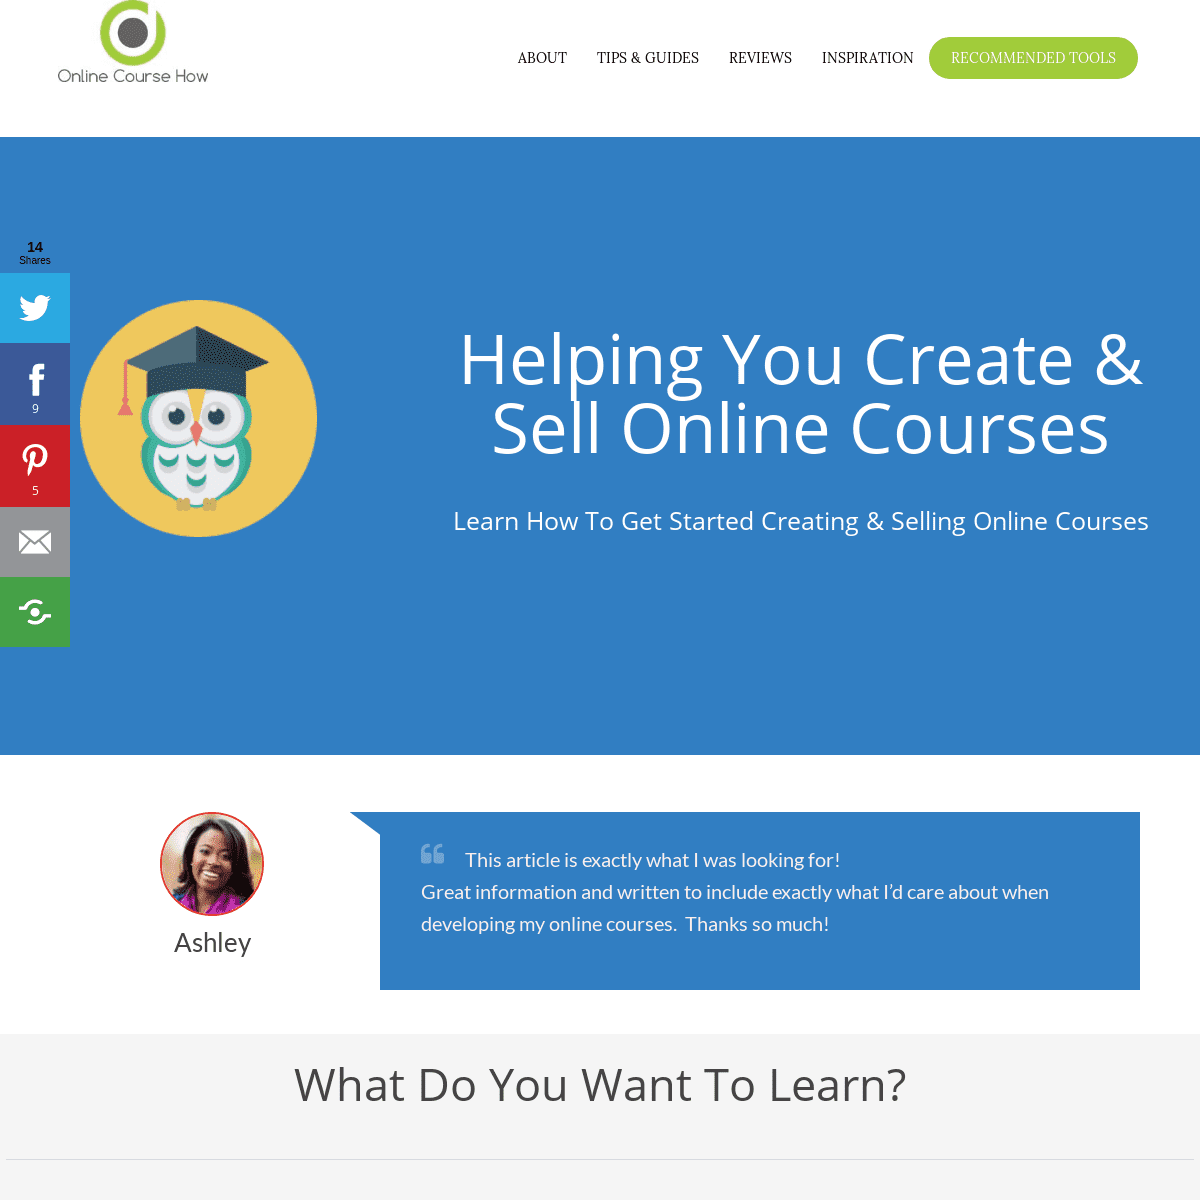 Online Course How Homepage - Online Course How